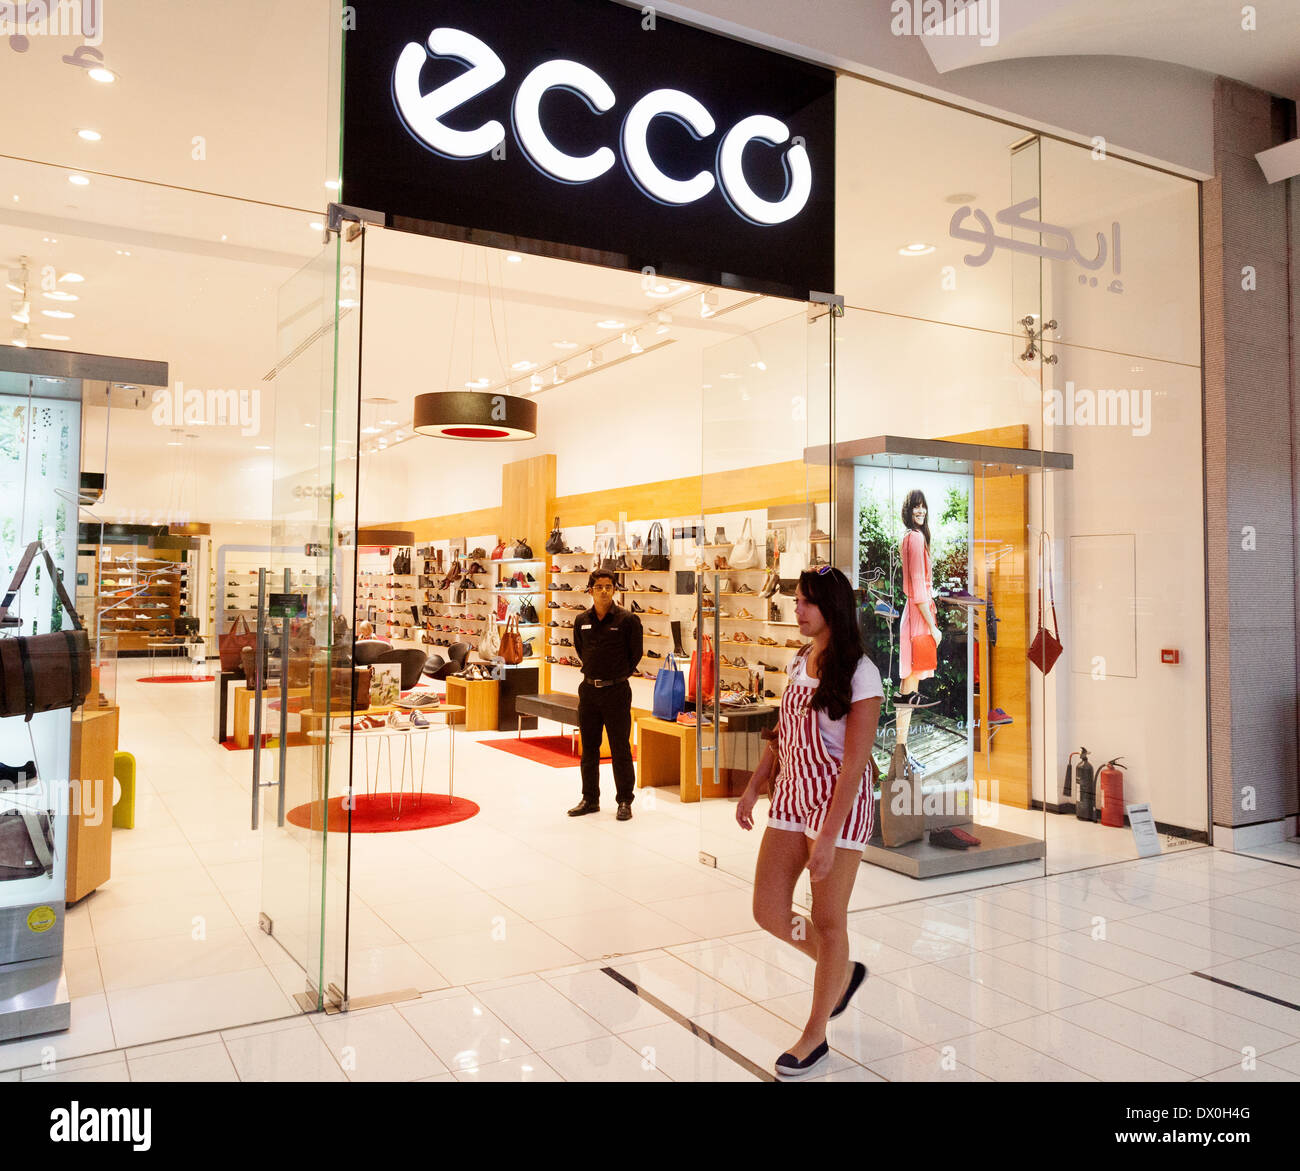 ecco shoes retail stores